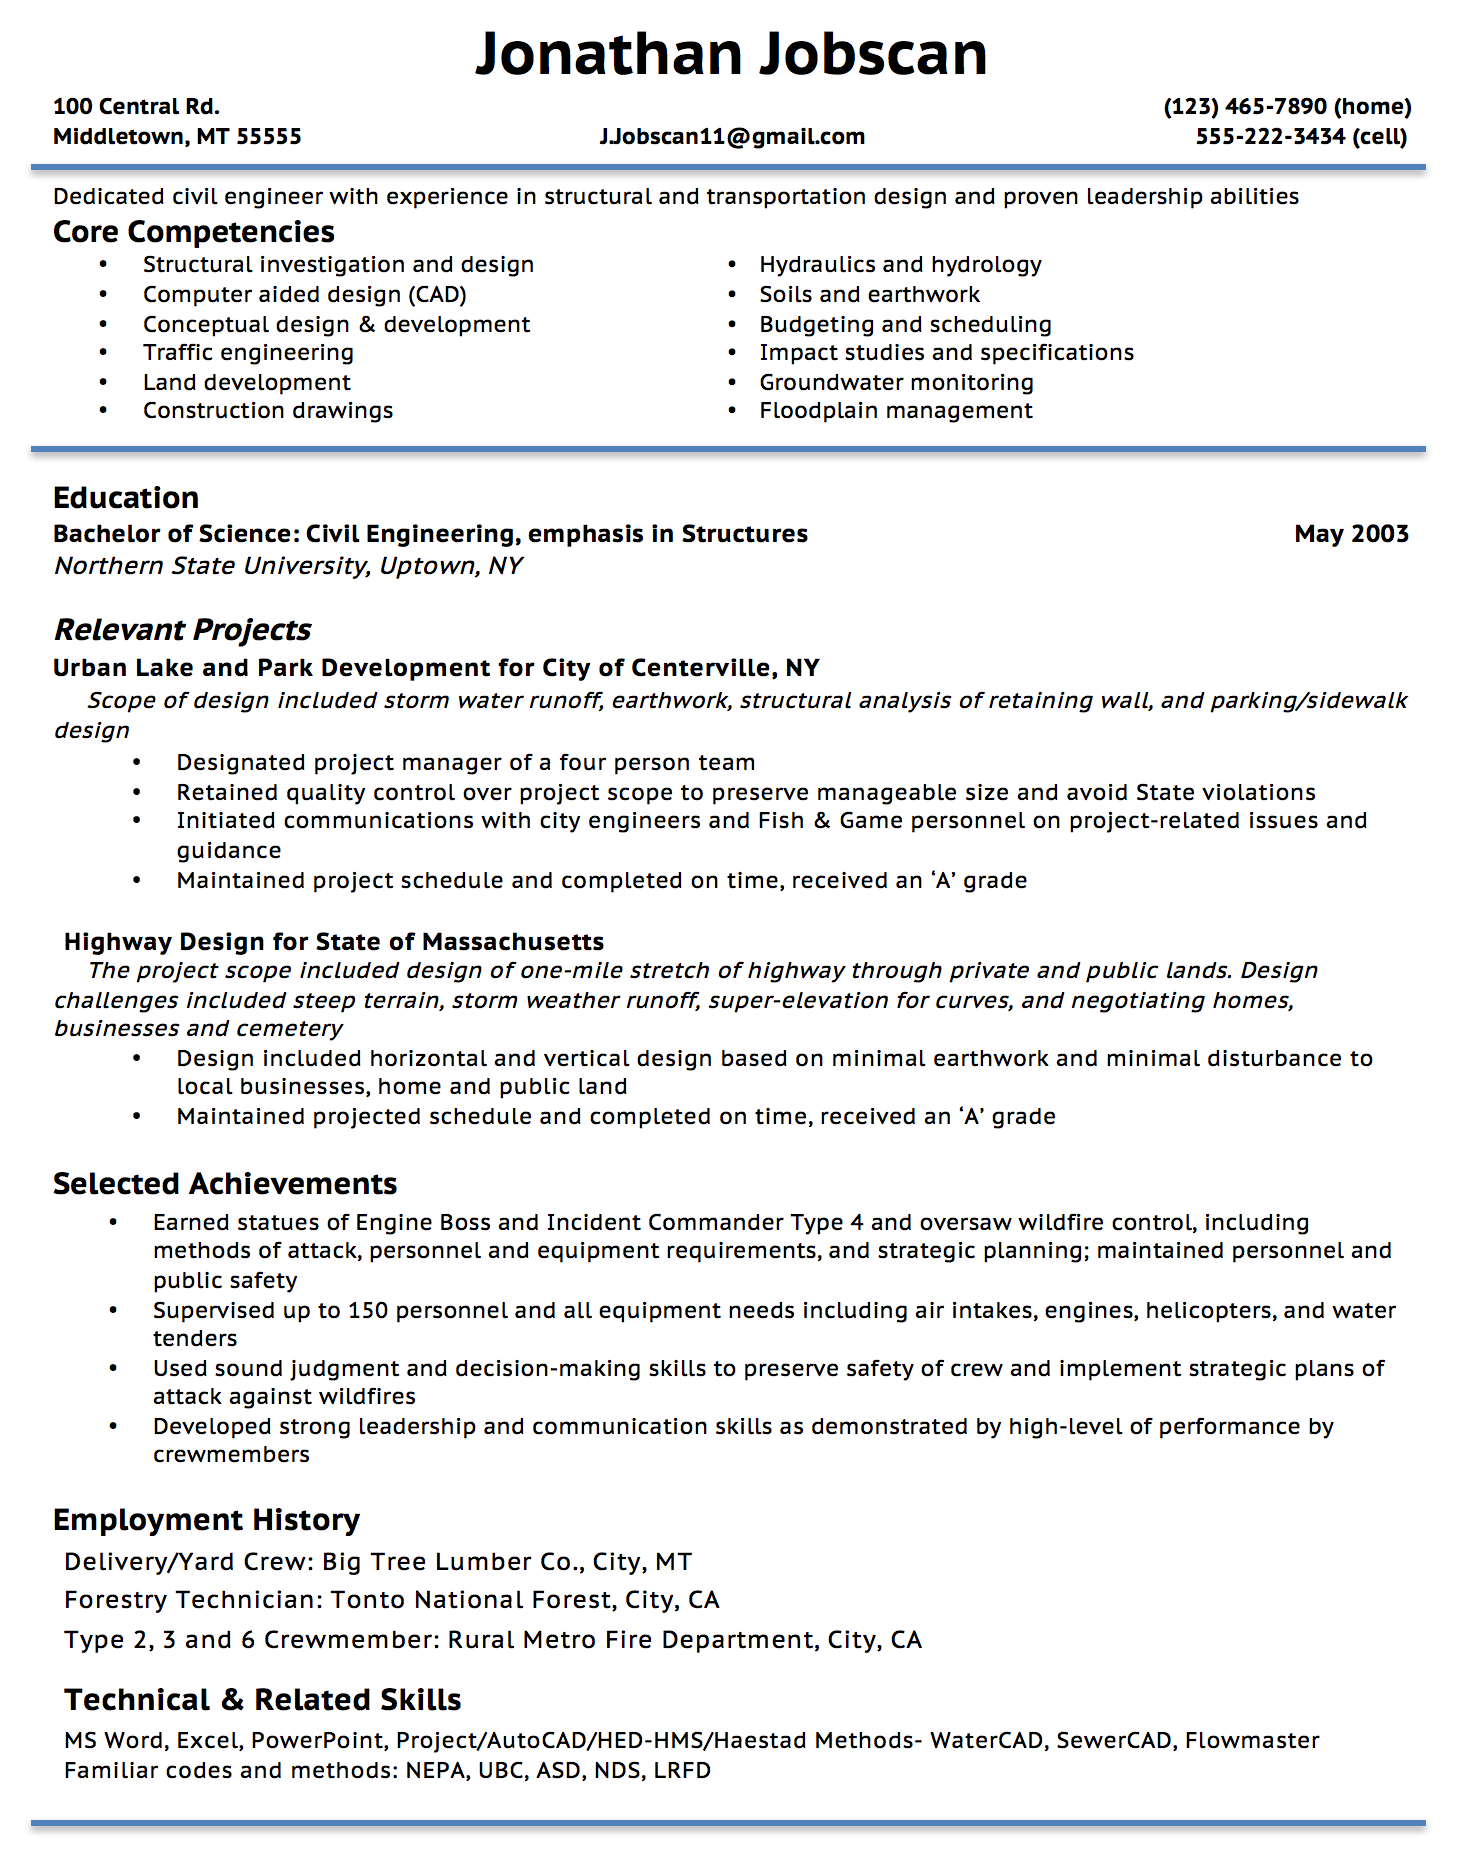 Opposenewapstandardsus  Ravishing Resume Writing Guide  Jobscan With Inspiring Example Of A Functional Resume Format With Amusing Best Words To Use On Resume Also Work Experience Resume Examples In Addition Resume Soft Skills And Harvard Business School Resume As Well As Work In Texas Resume Additionally Sample Sales Resumes From Jobscanco With Opposenewapstandardsus  Inspiring Resume Writing Guide  Jobscan With Amusing Example Of A Functional Resume Format And Ravishing Best Words To Use On Resume Also Work Experience Resume Examples In Addition Resume Soft Skills From Jobscanco